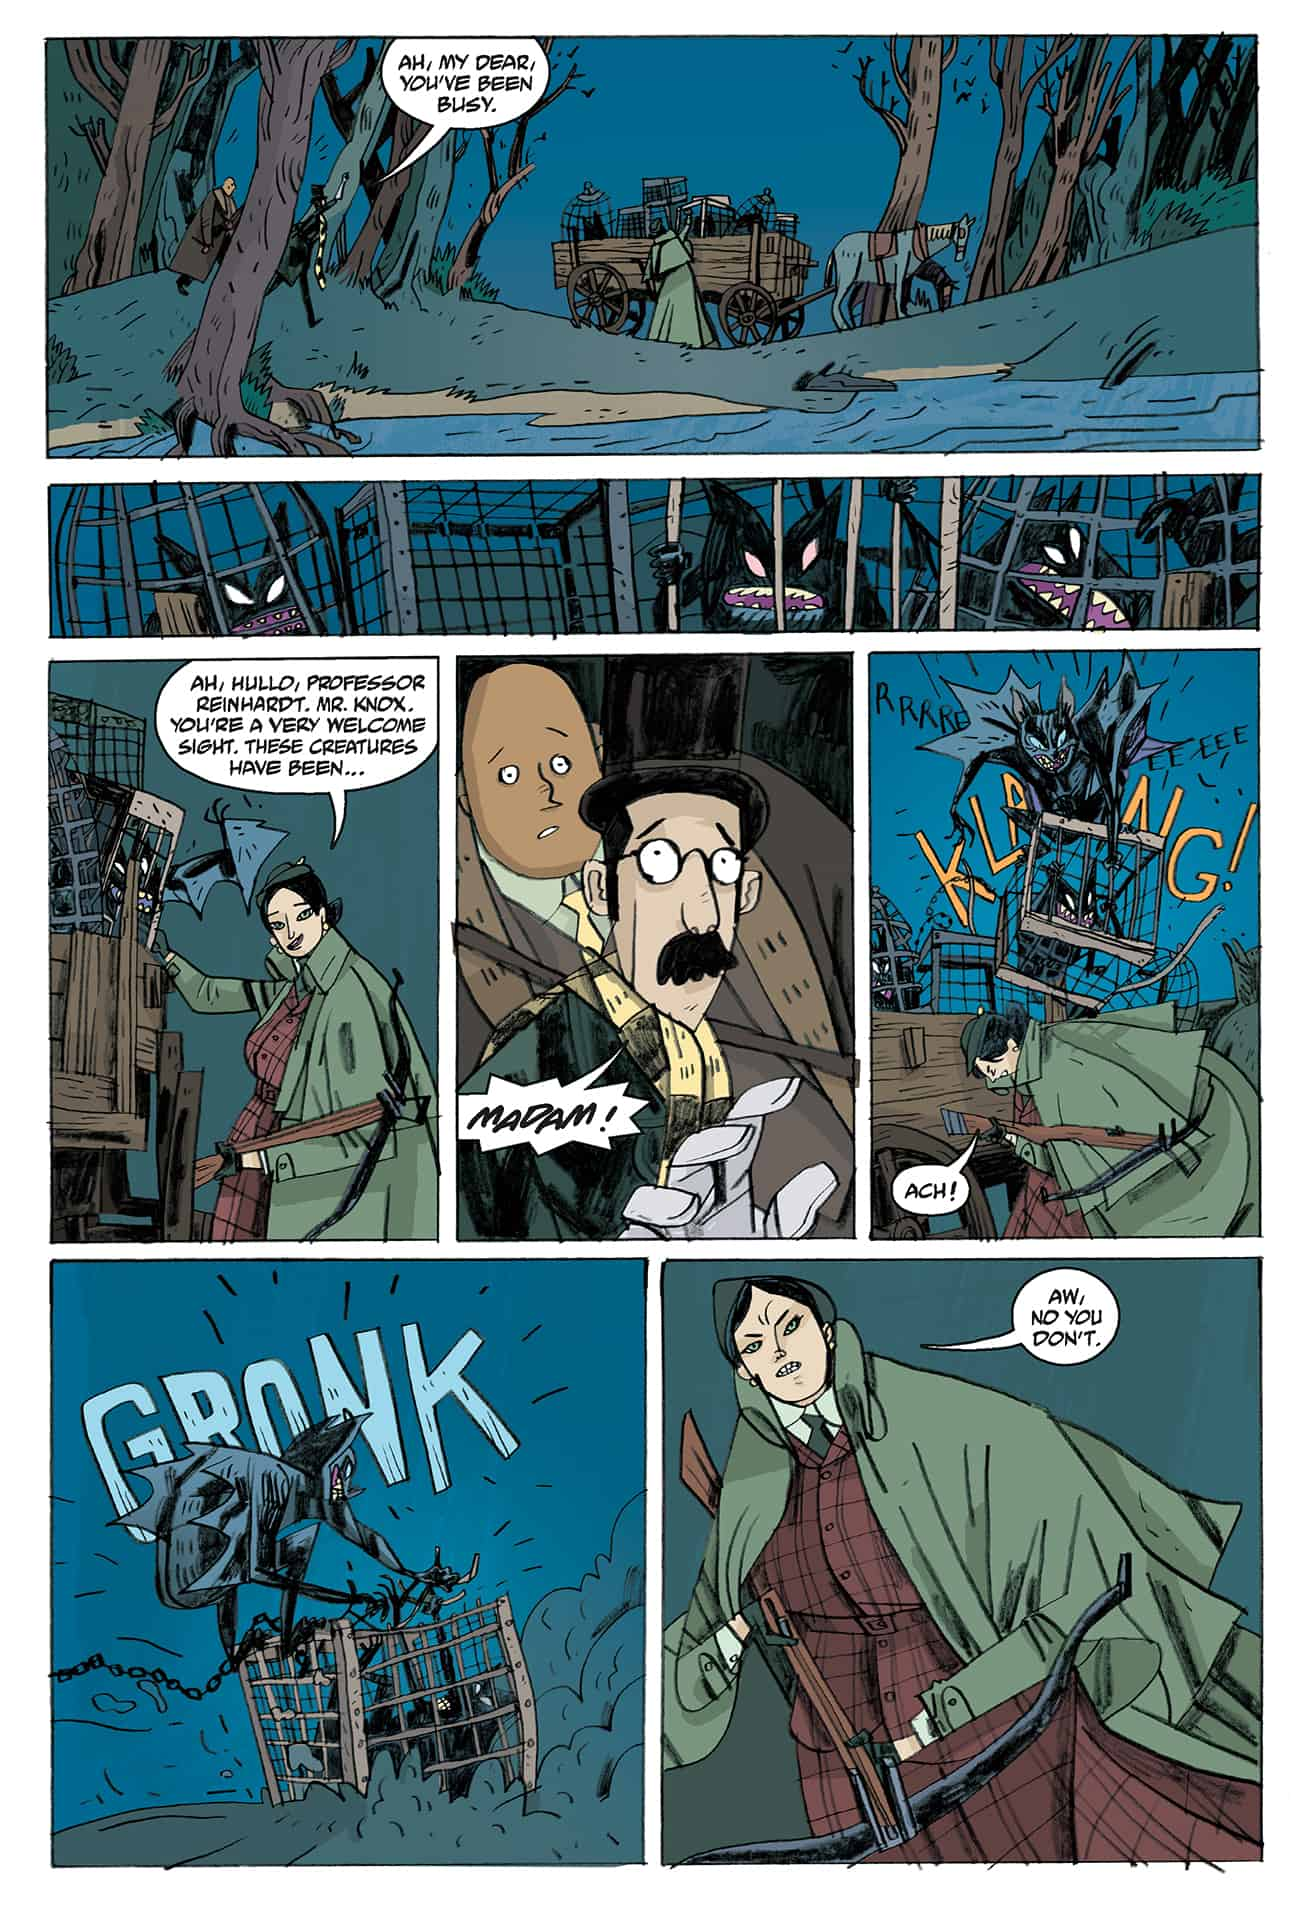 OEWE BLACKWATER PG 05 - Exclusive Preview of OUR ENCOUNTERS WITH EVIL by Mike Mignola & Warwick Johnson-Cadwell